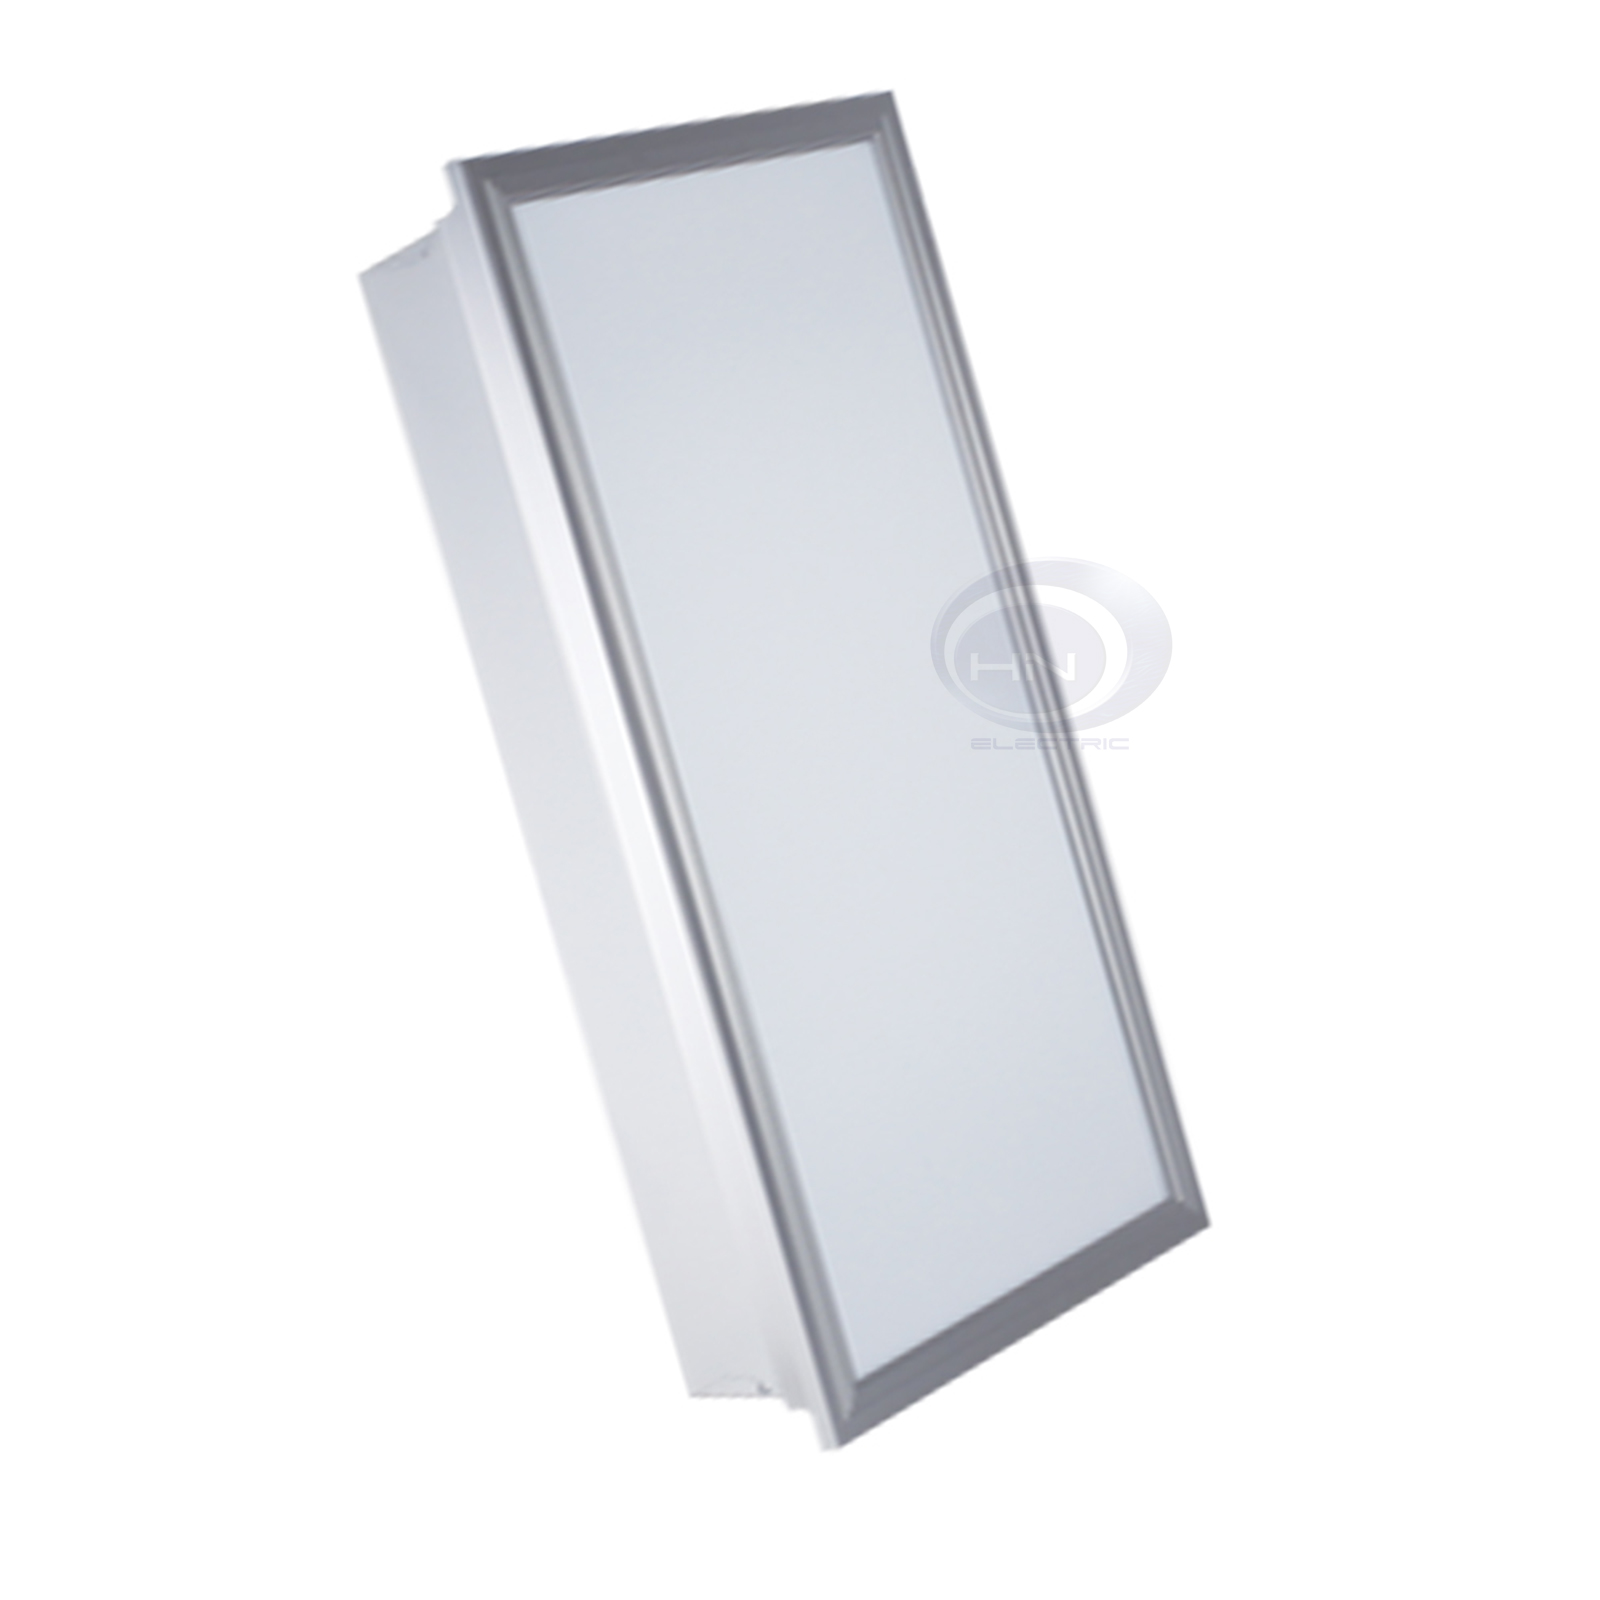 Đèn Led Panel hộp 600x300x60mm KingLed